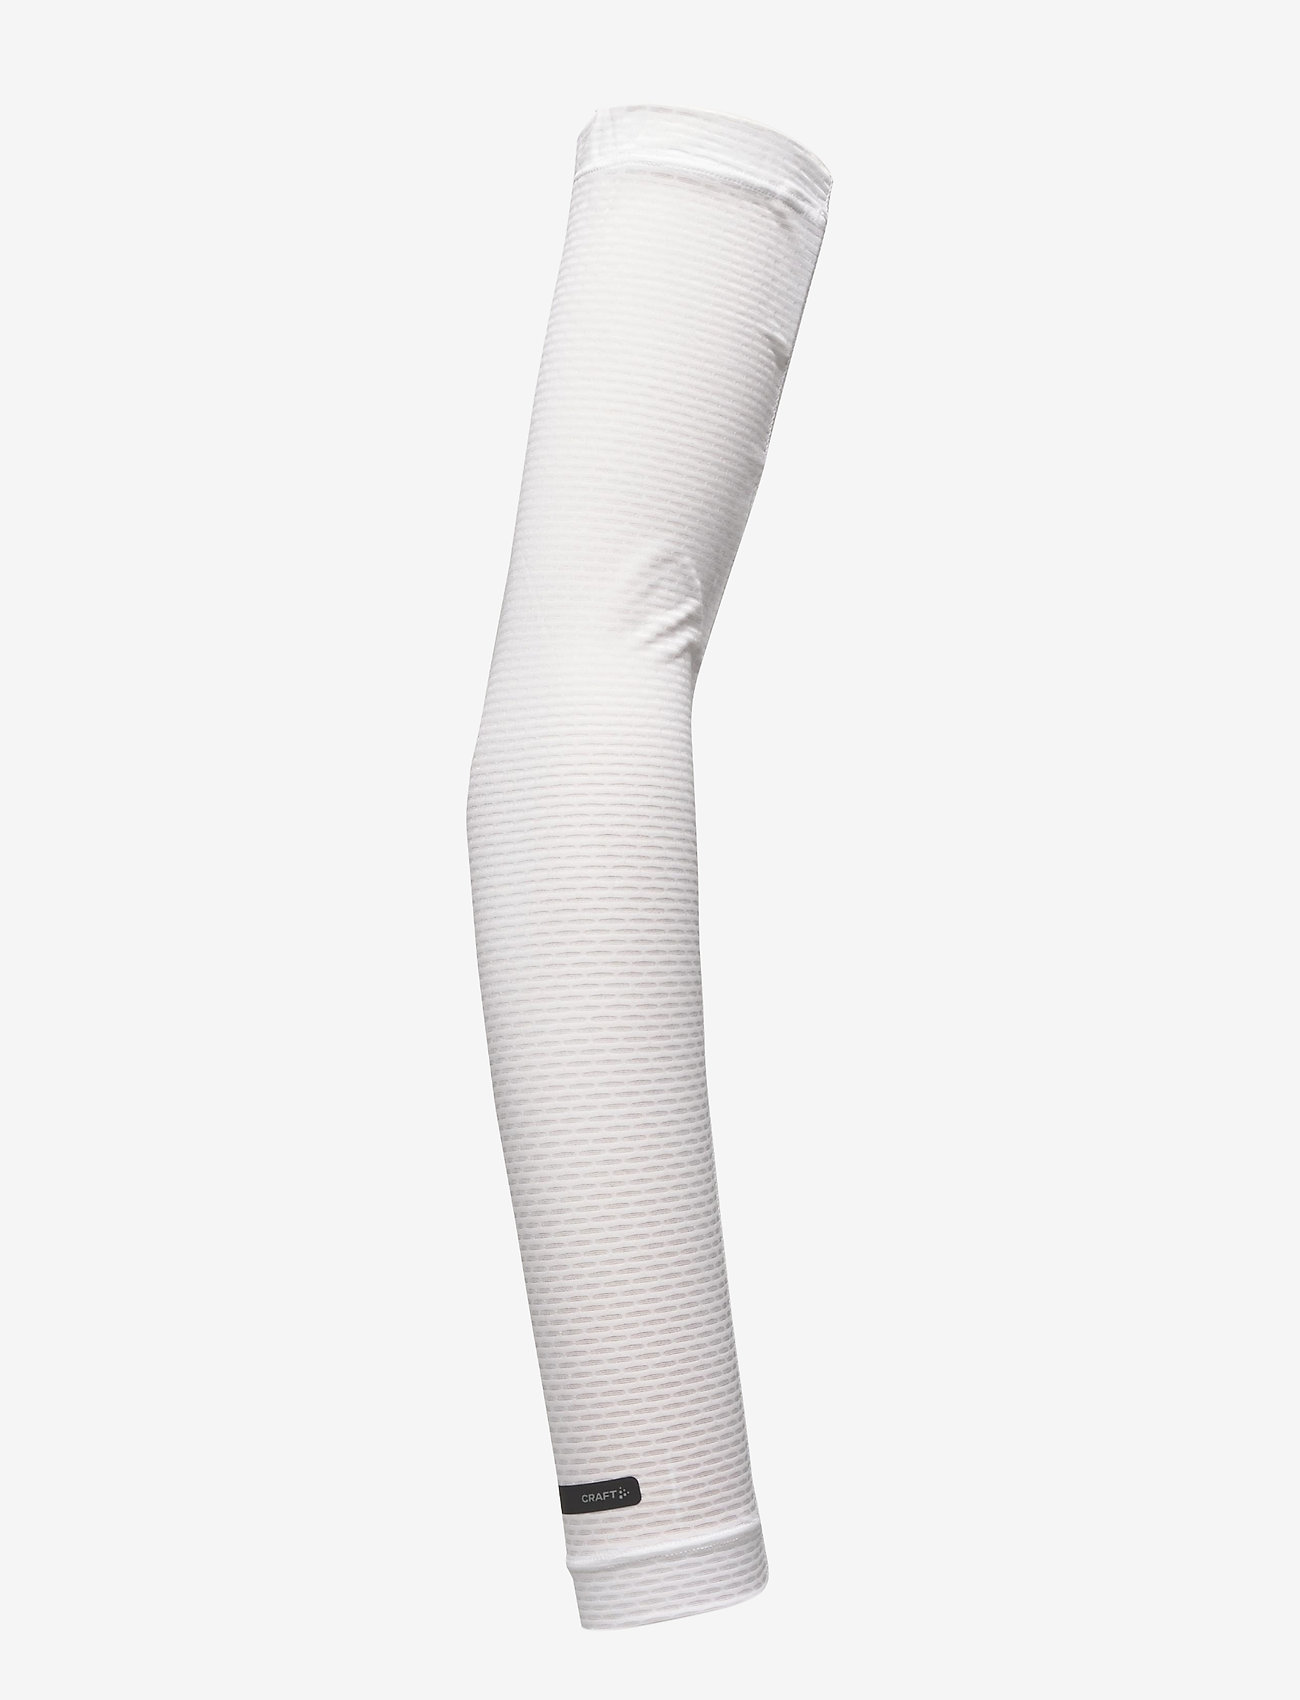 Craft - VENT MESH ARM COVER - andet - white - 0